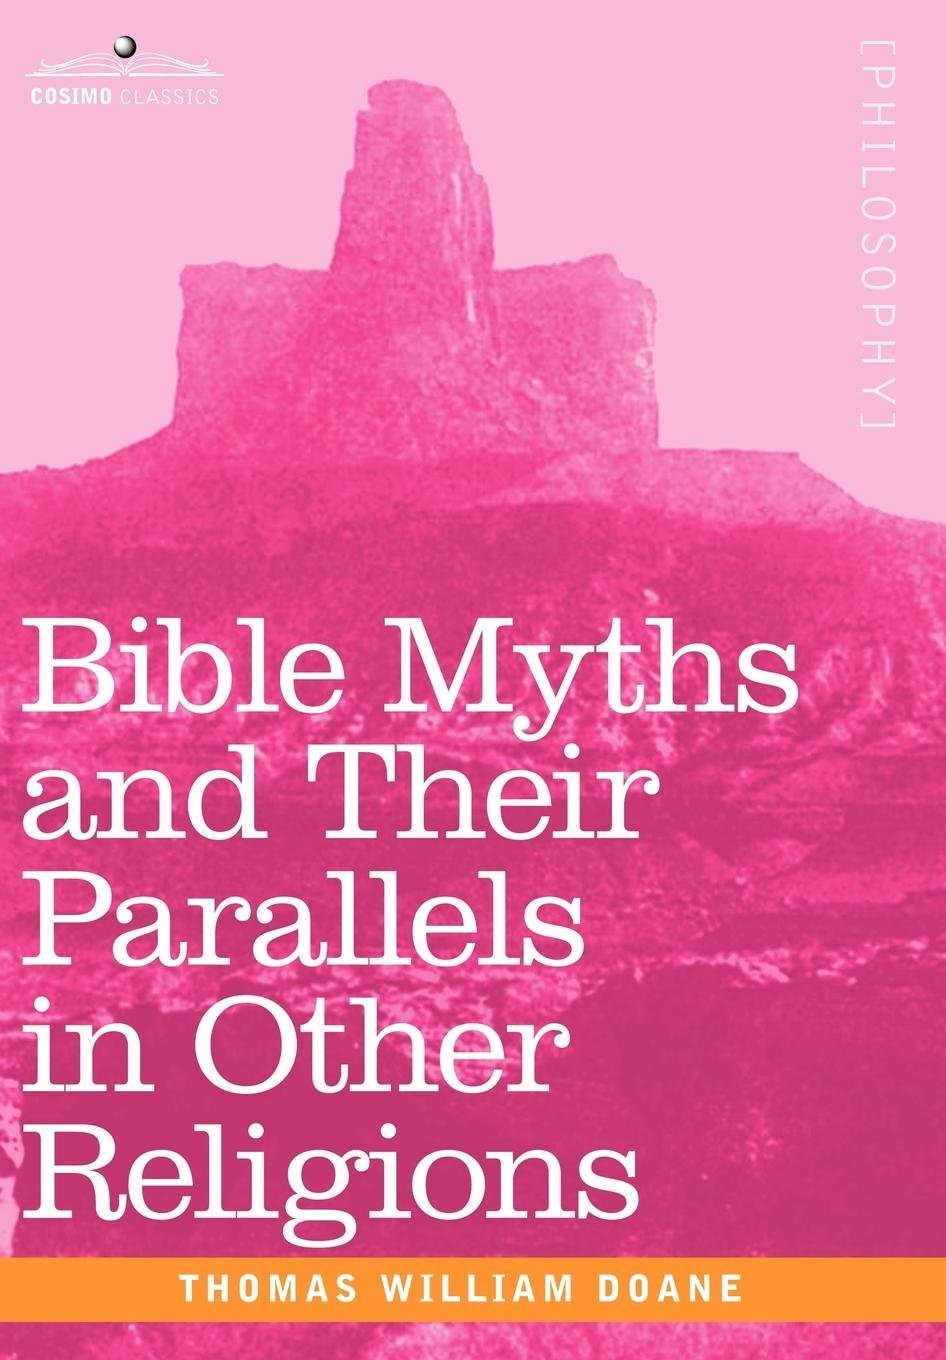 Bible Myths and Their Parallels in Other Religions: Thomas William Doane:  9781602069510: Amazon.com: Books